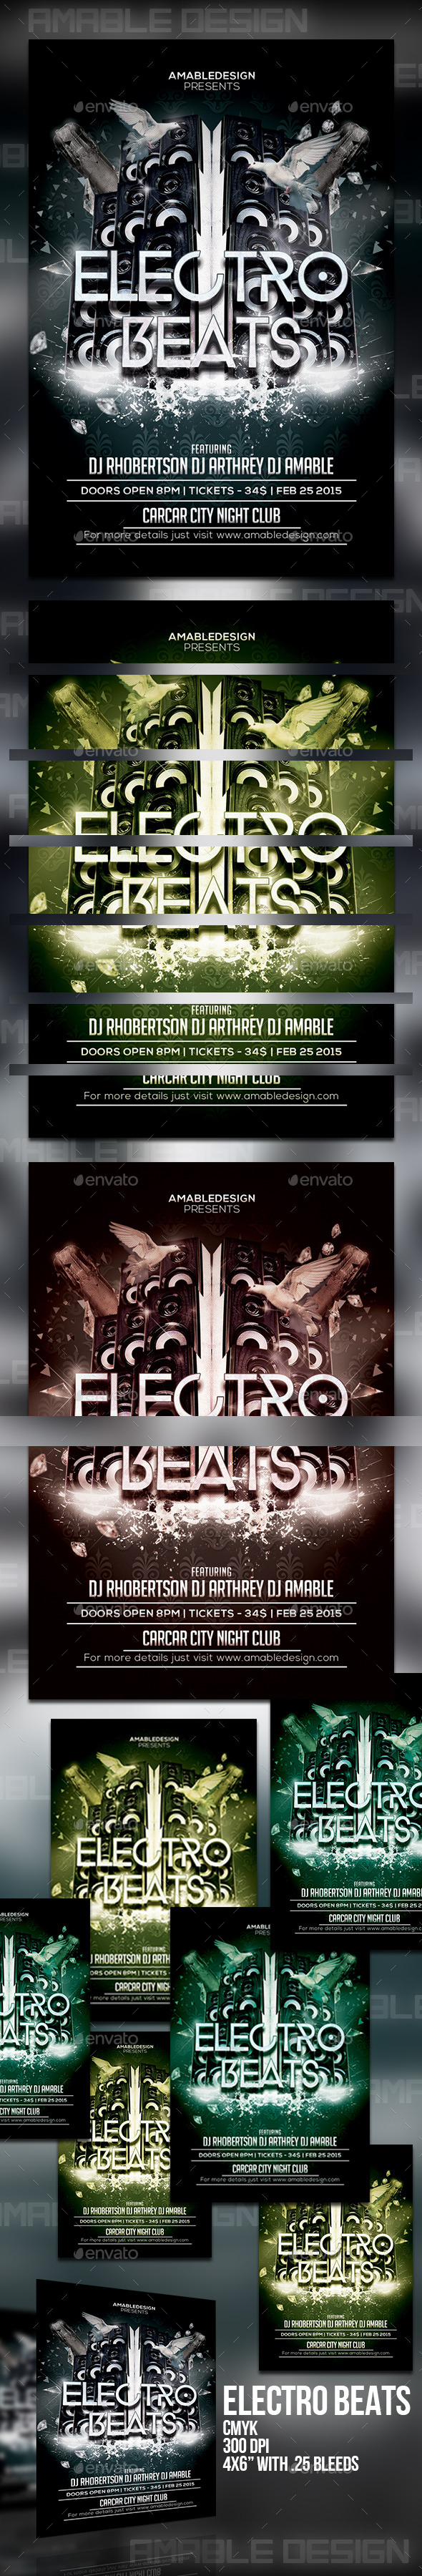 GraphicRiver Electro Beats Flyer 10450208